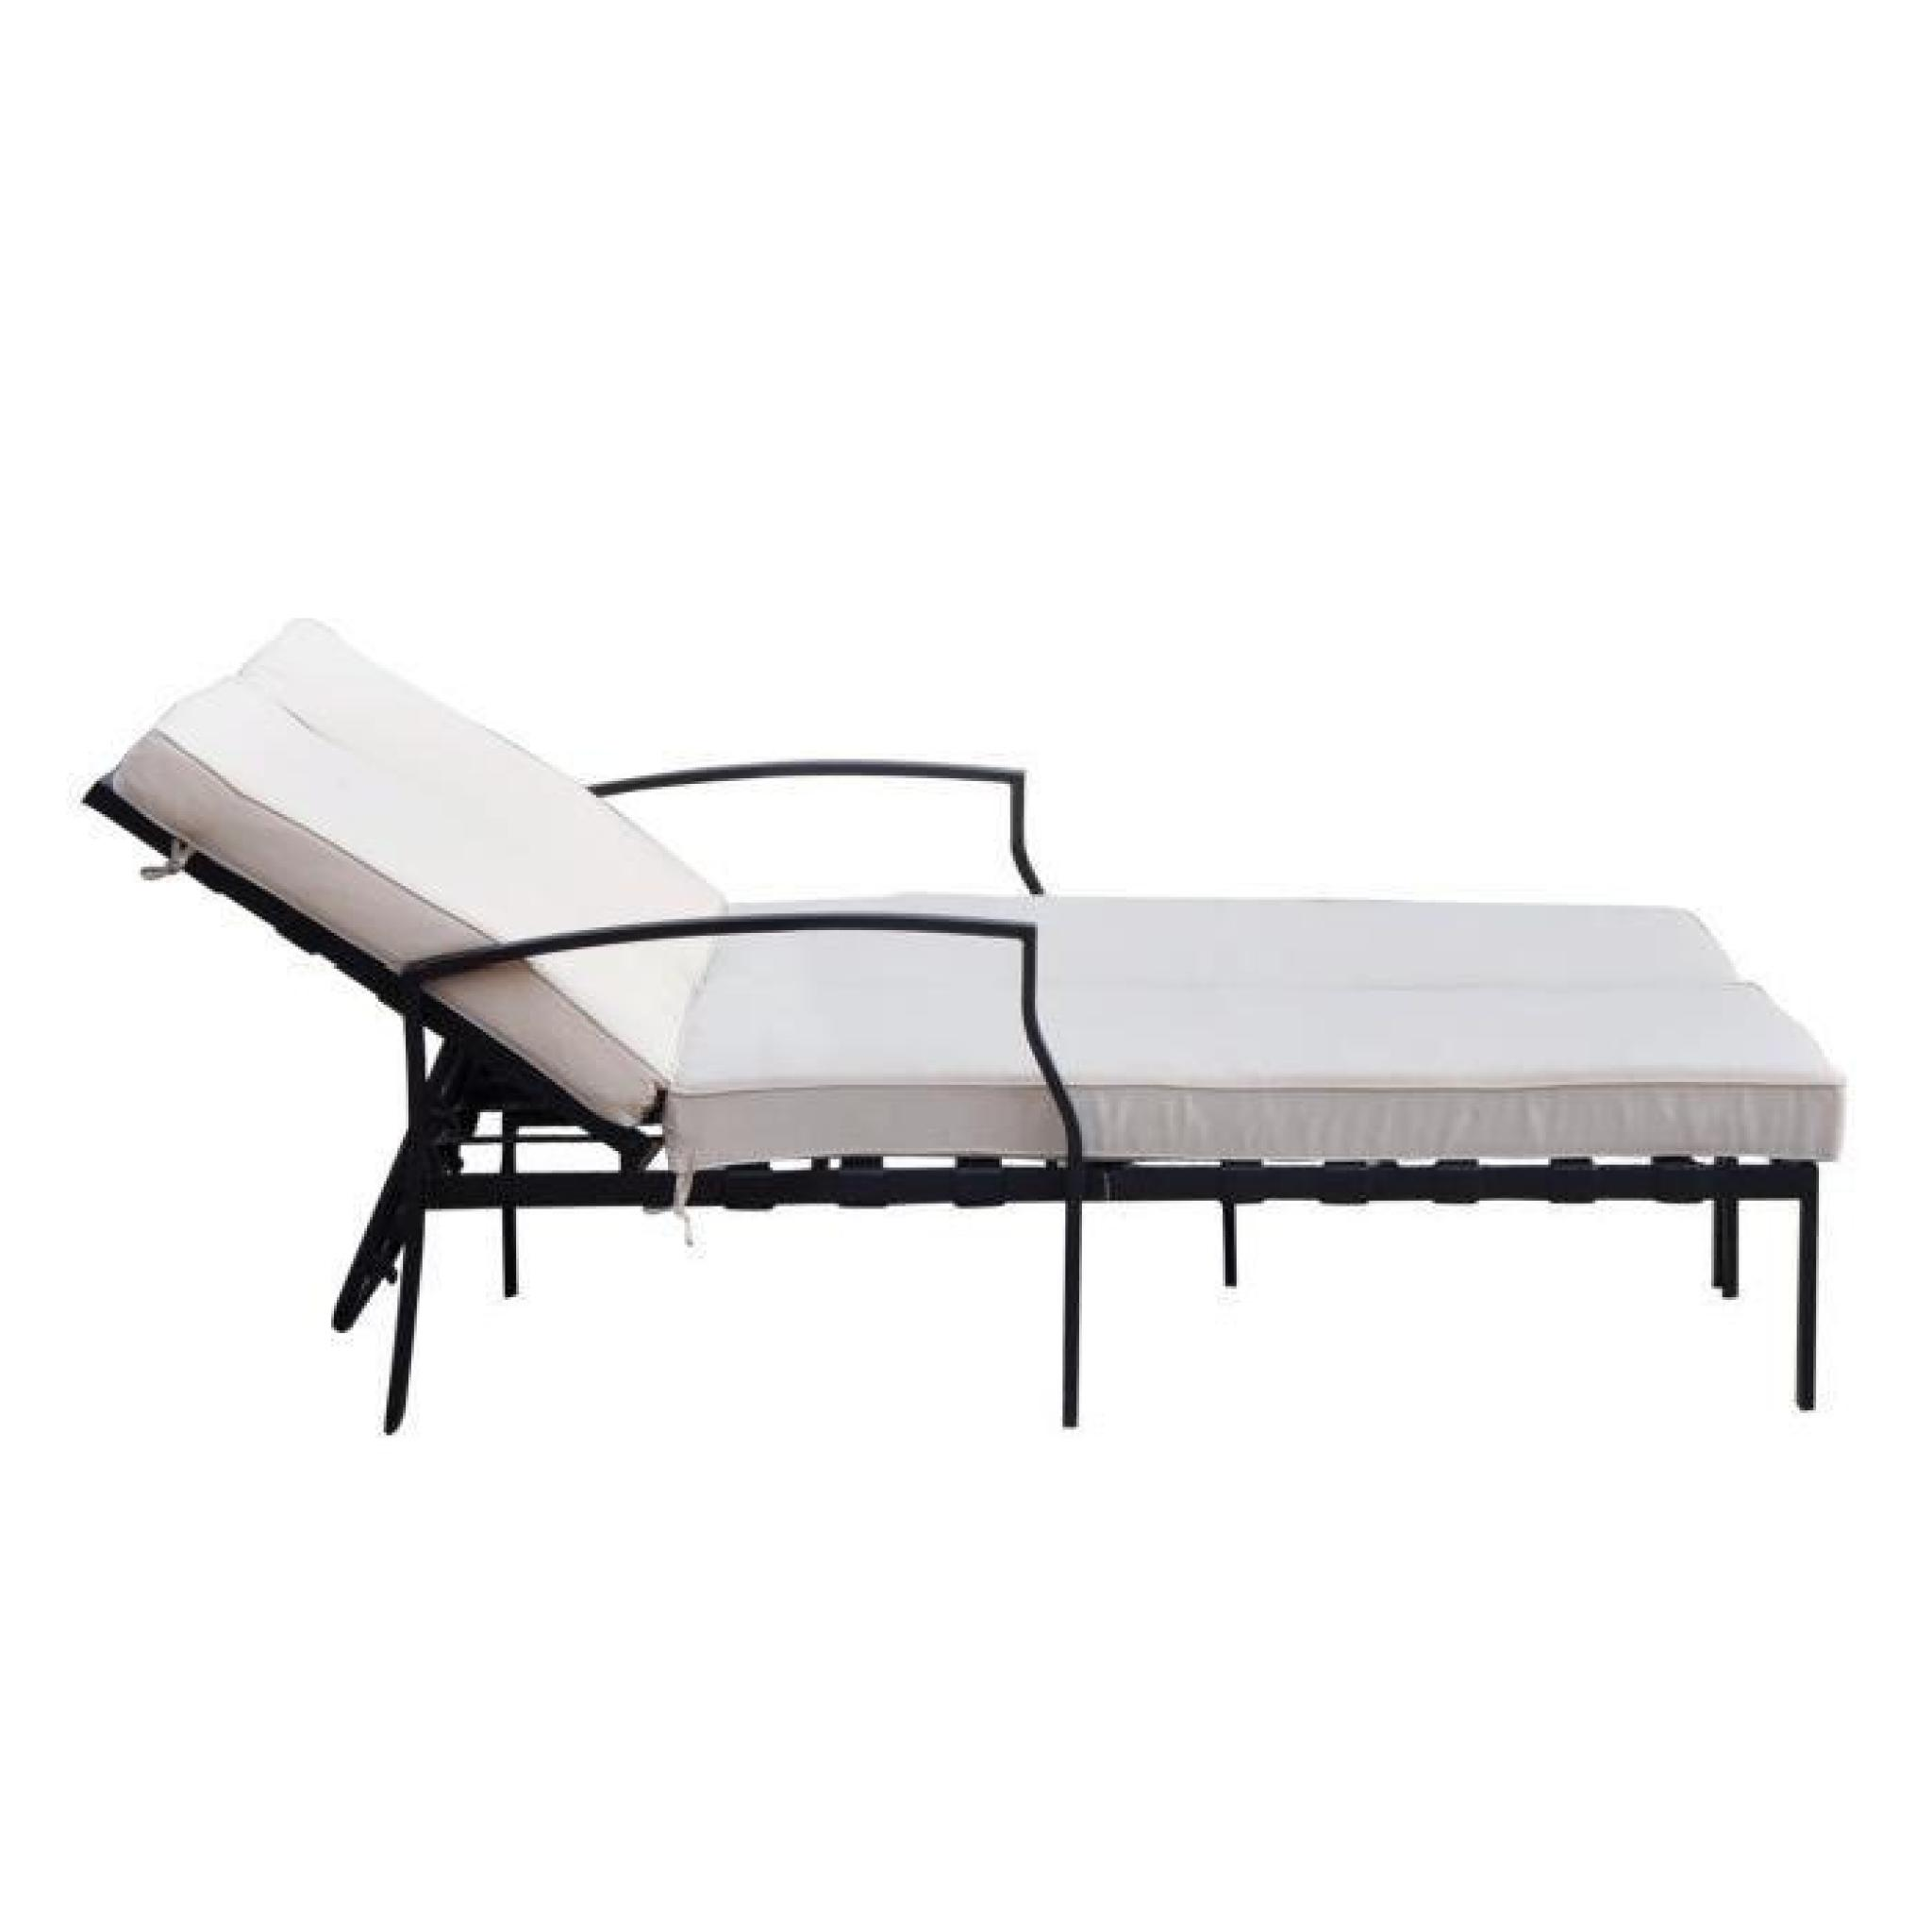 unique coussin de chaise longue id es de salon de jardin. Black Bedroom Furniture Sets. Home Design Ideas